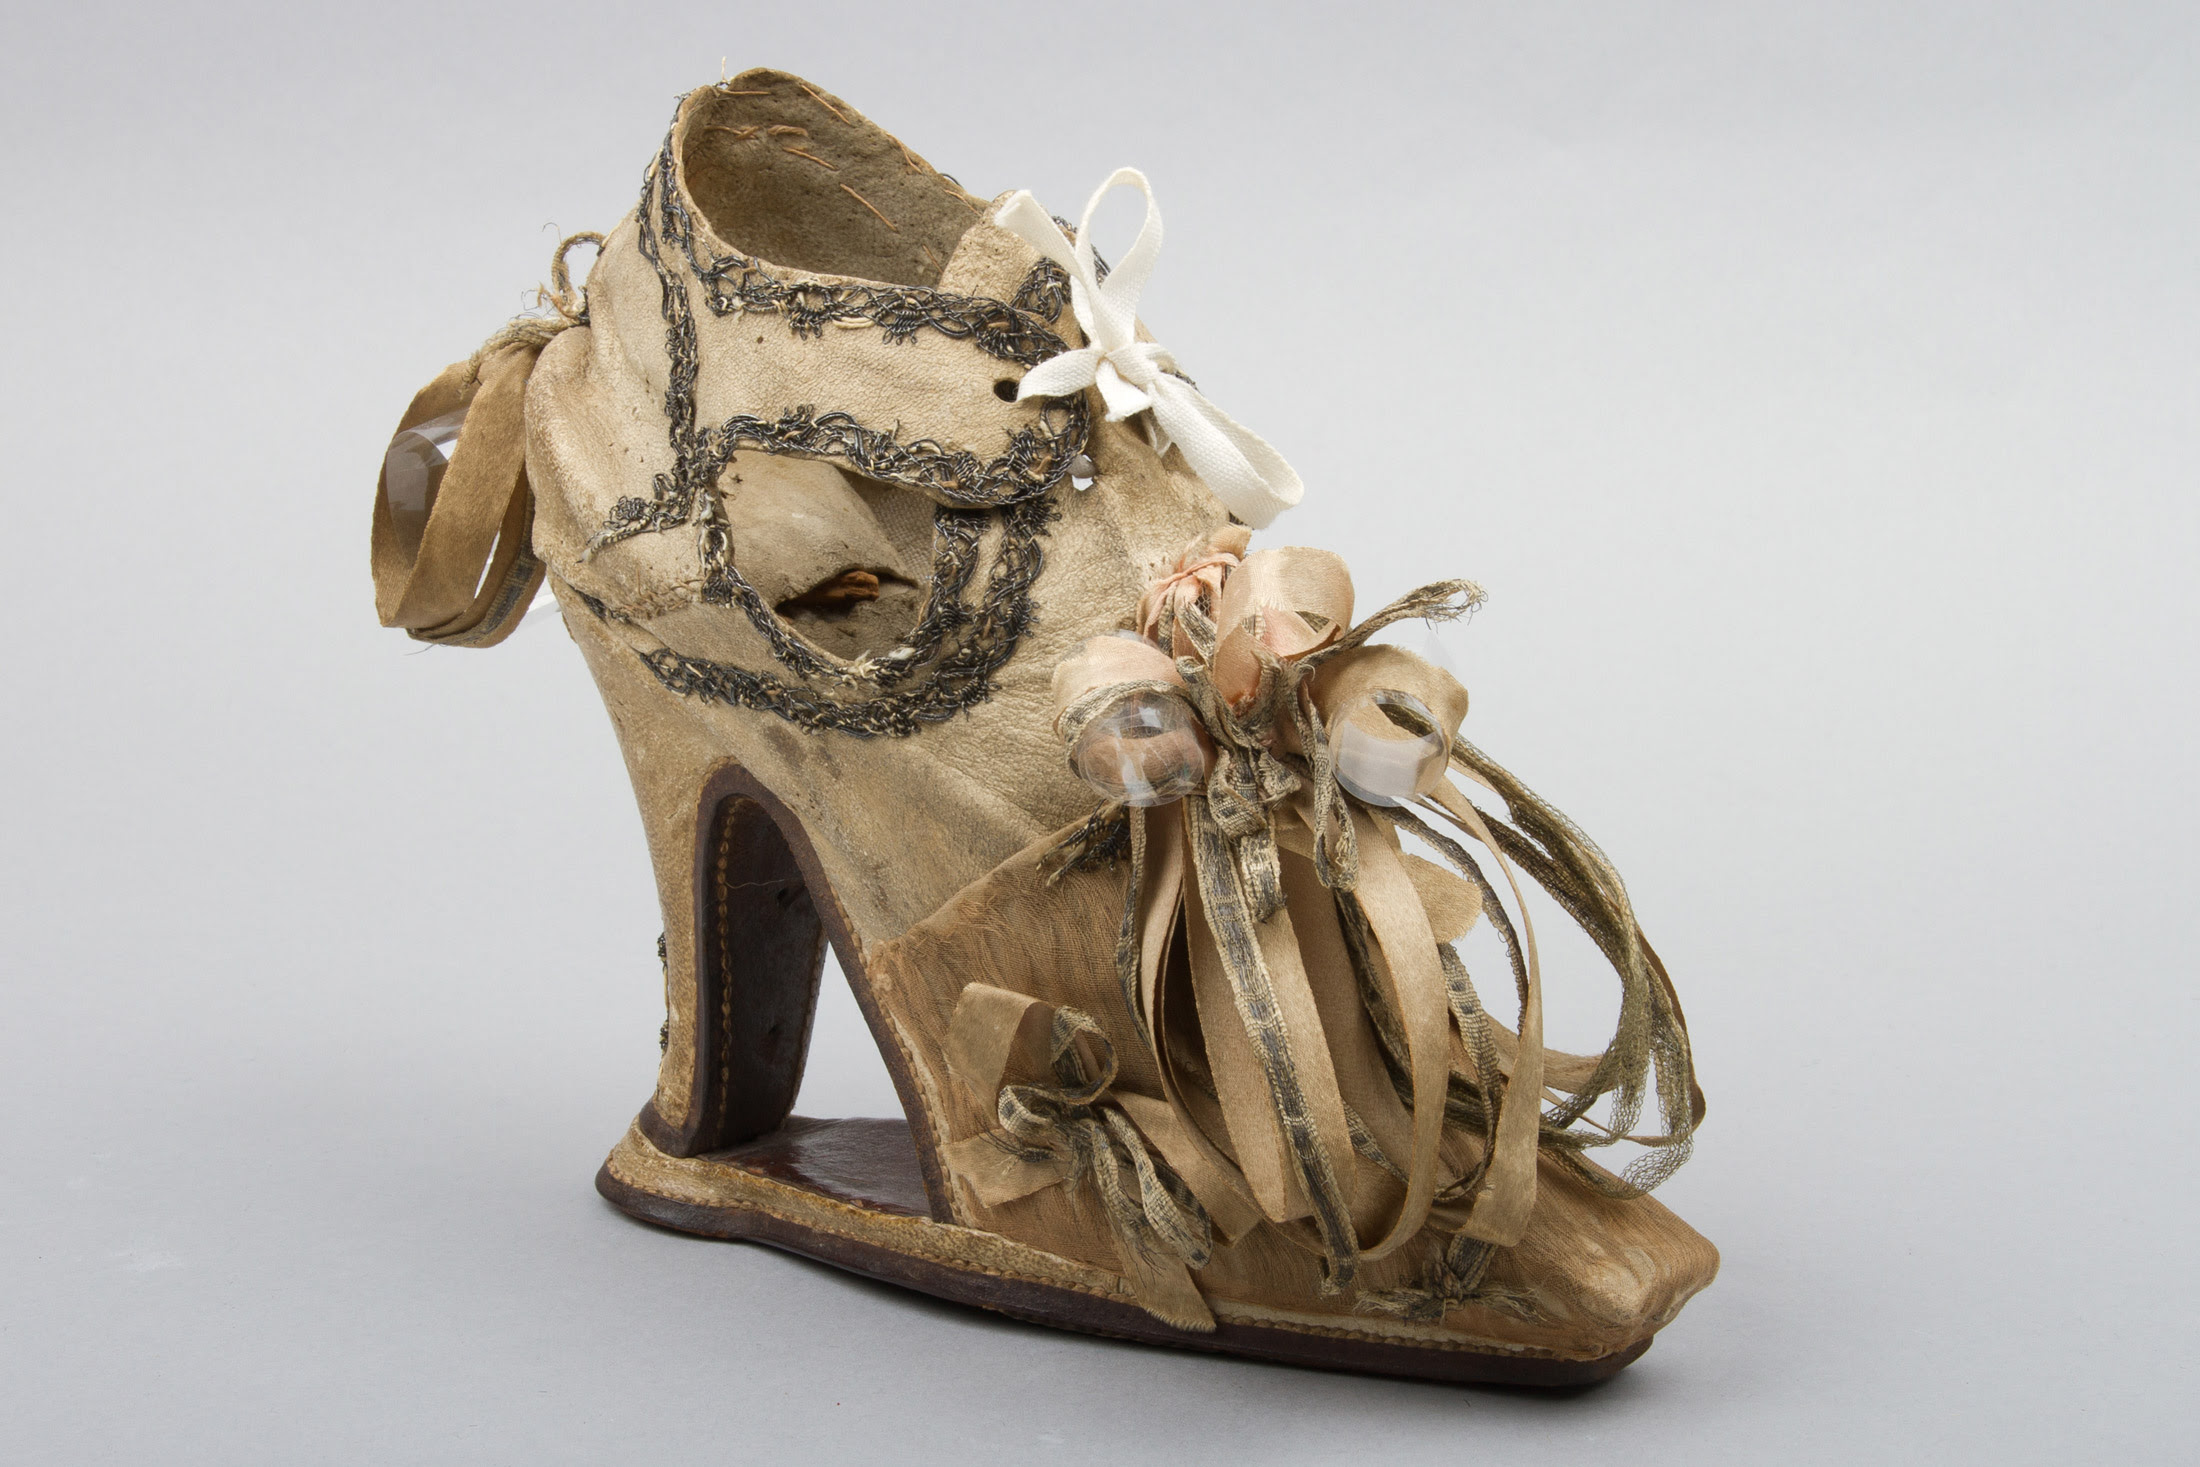 Women's Slap Sole Shoe, 1640-50, England